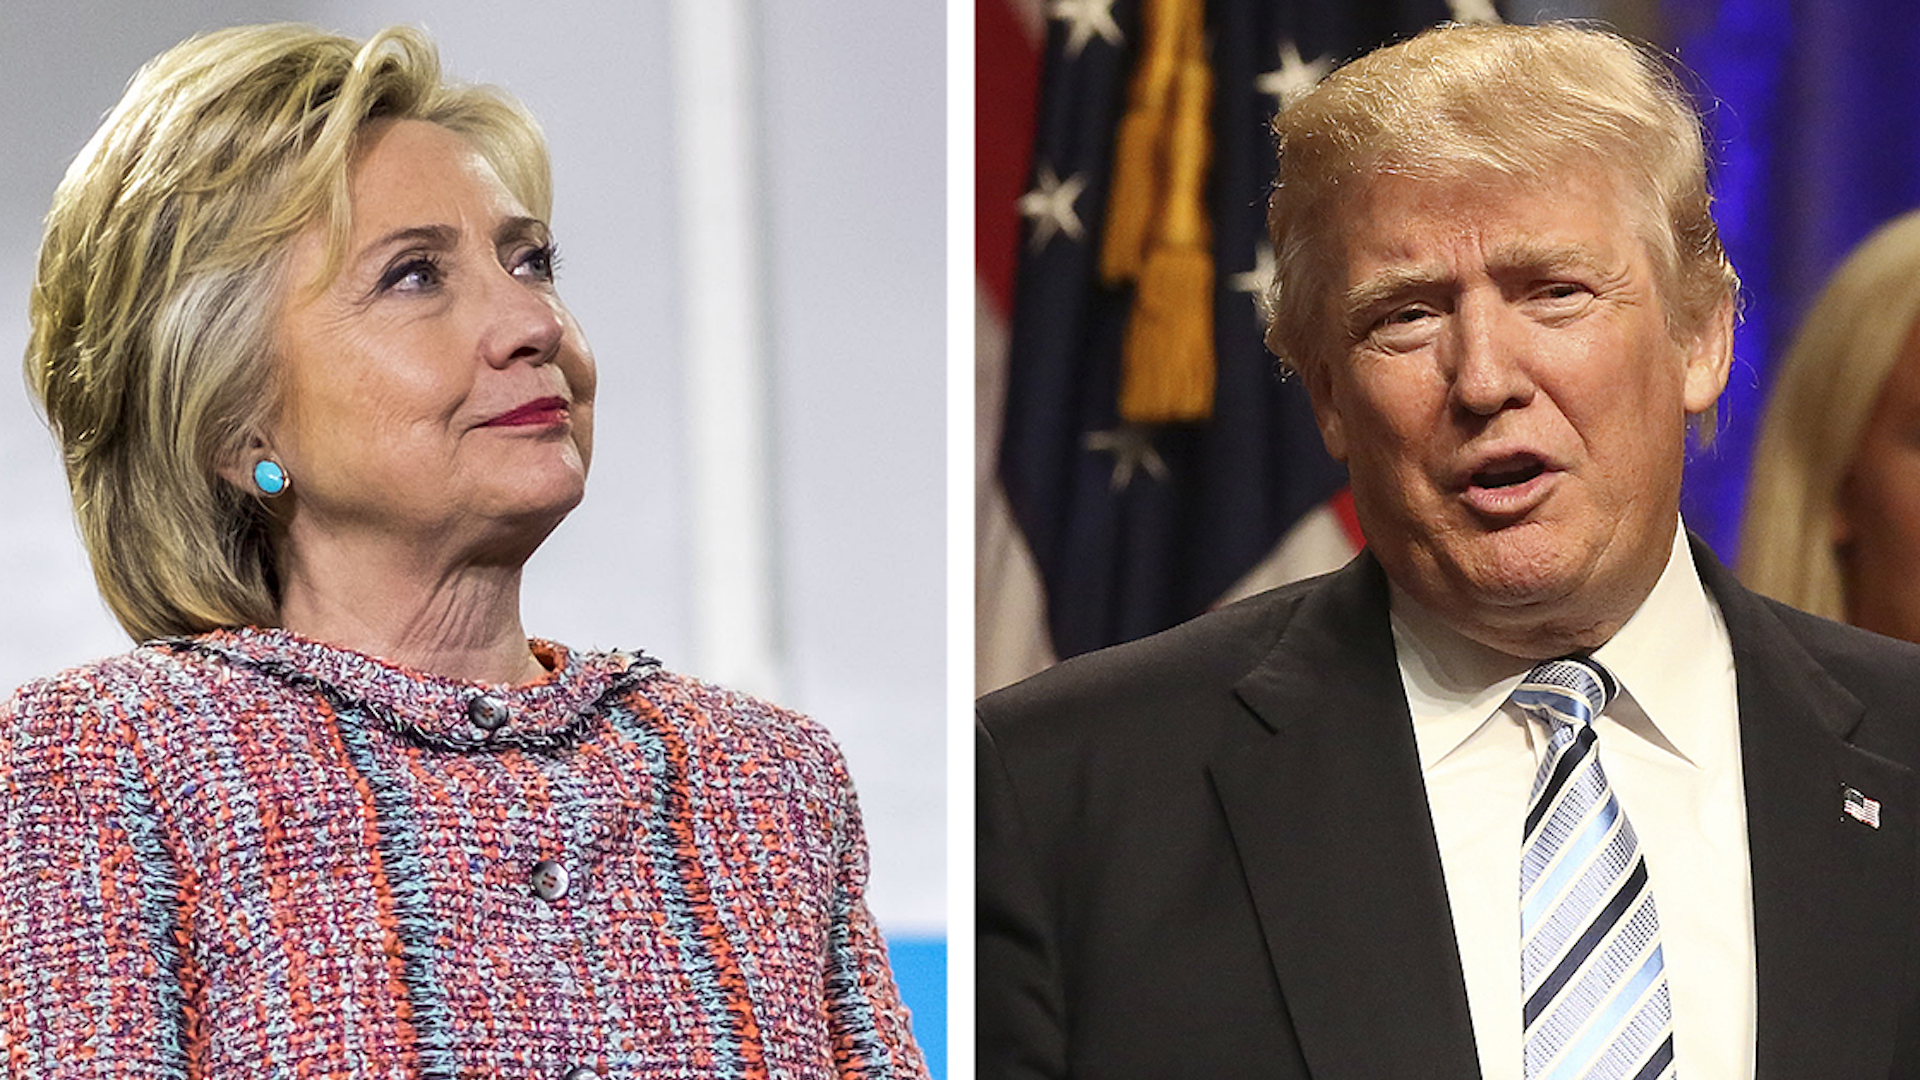 Clinton, Trump sprint across U.S. as campaigns react to dramatic development in email case